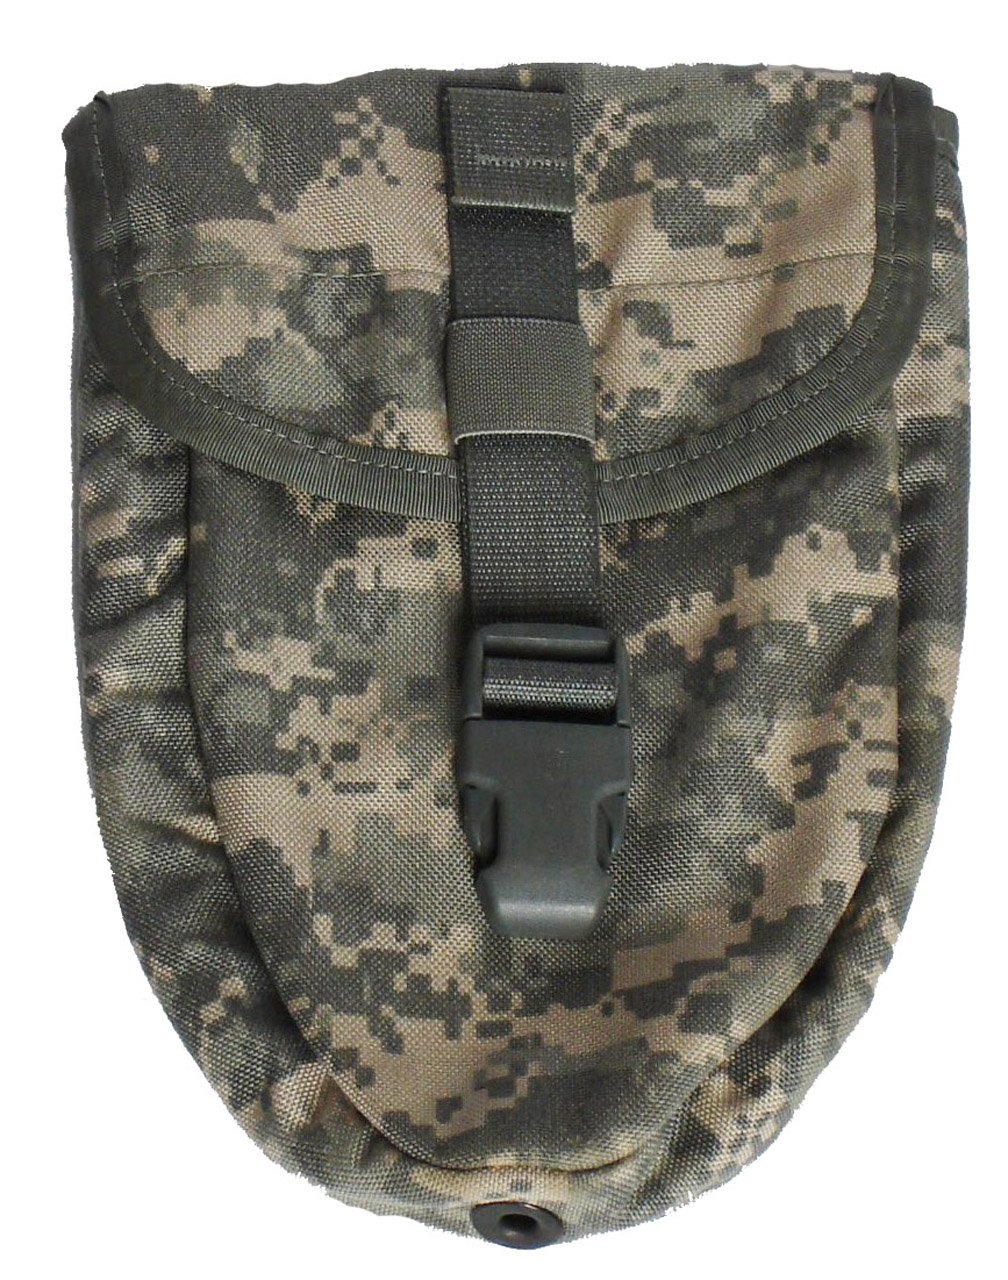 Military Outdoor Clothing 8407-N Never Issued U.S. G.I. ACU Digital MOLLE Entrenching Tool Cover